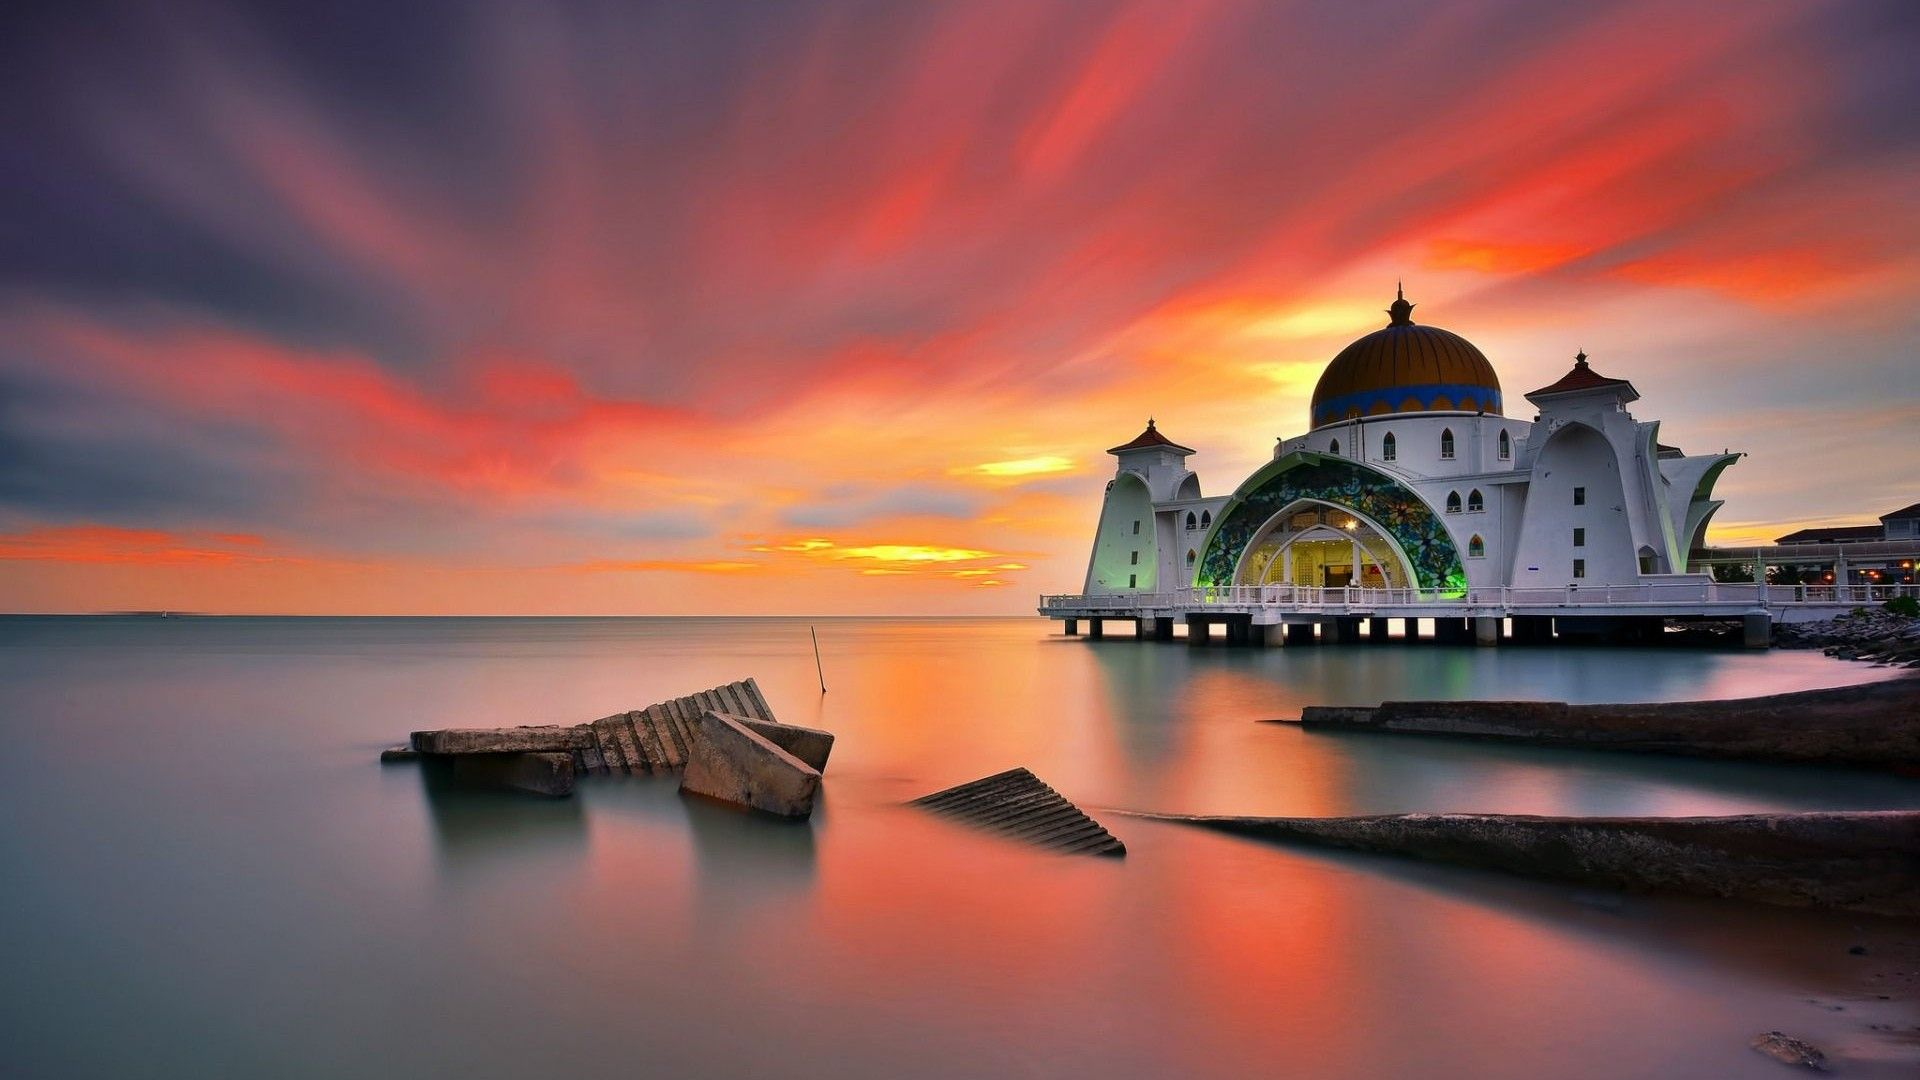 full HD Selat Melaka Mosque Malaysia Desktop wallpaper download free for Widescreen, Mobile ...